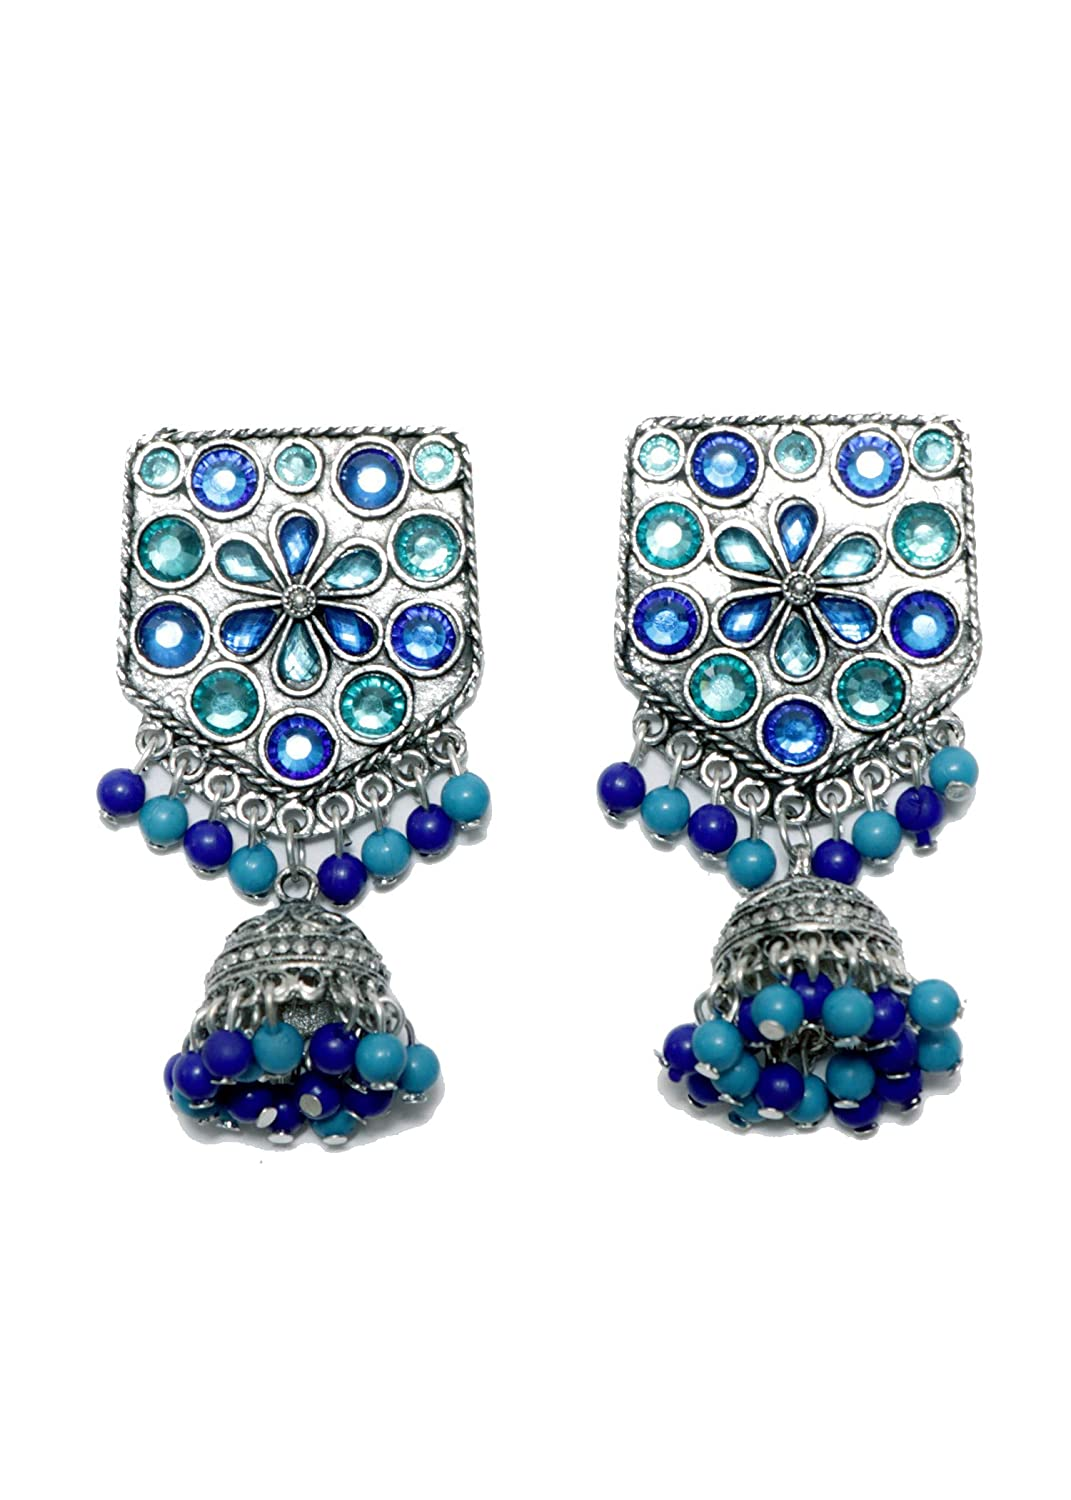 Patterned Pentagon Oxidized Silver Jhumki Earrings Indian Traditional Jewellery for Stylish Women and Girls by SP Jewels